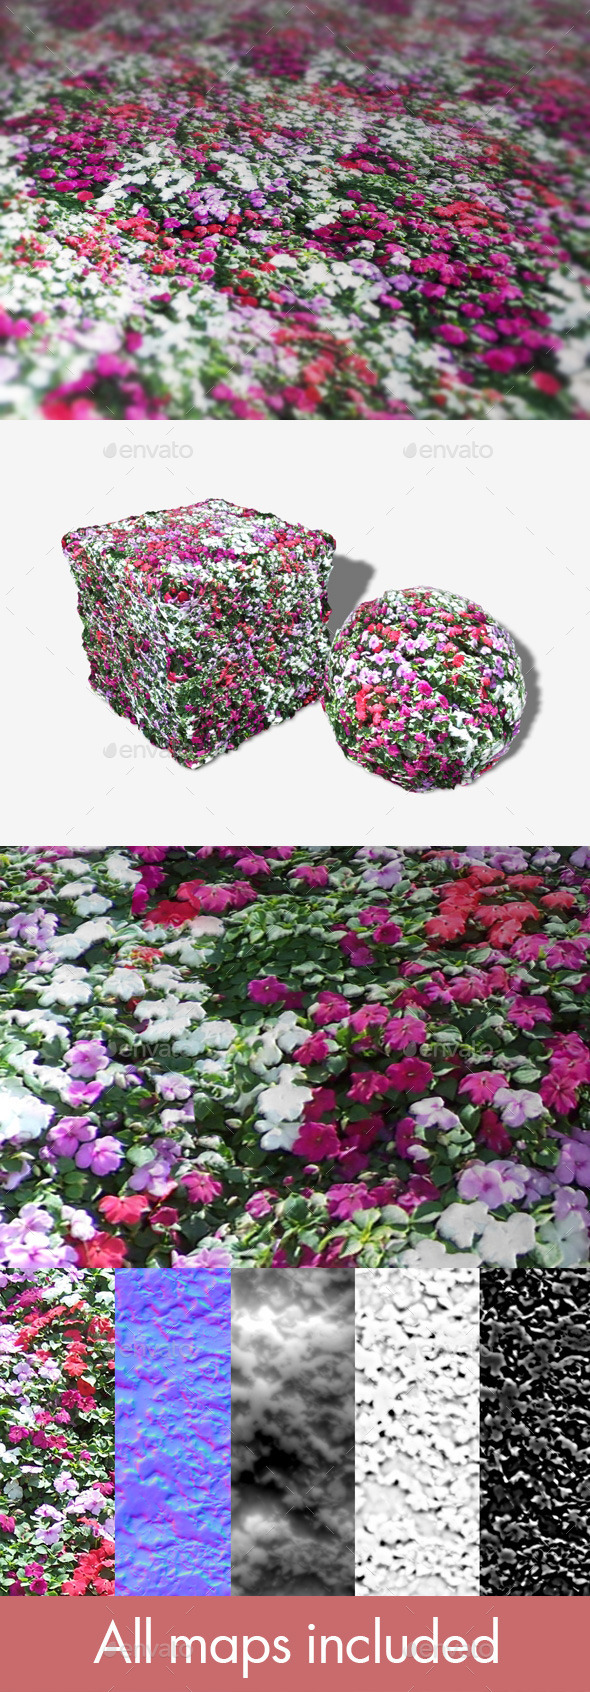 Flowerbed Seamless Texture - 3DOcean Item for Sale